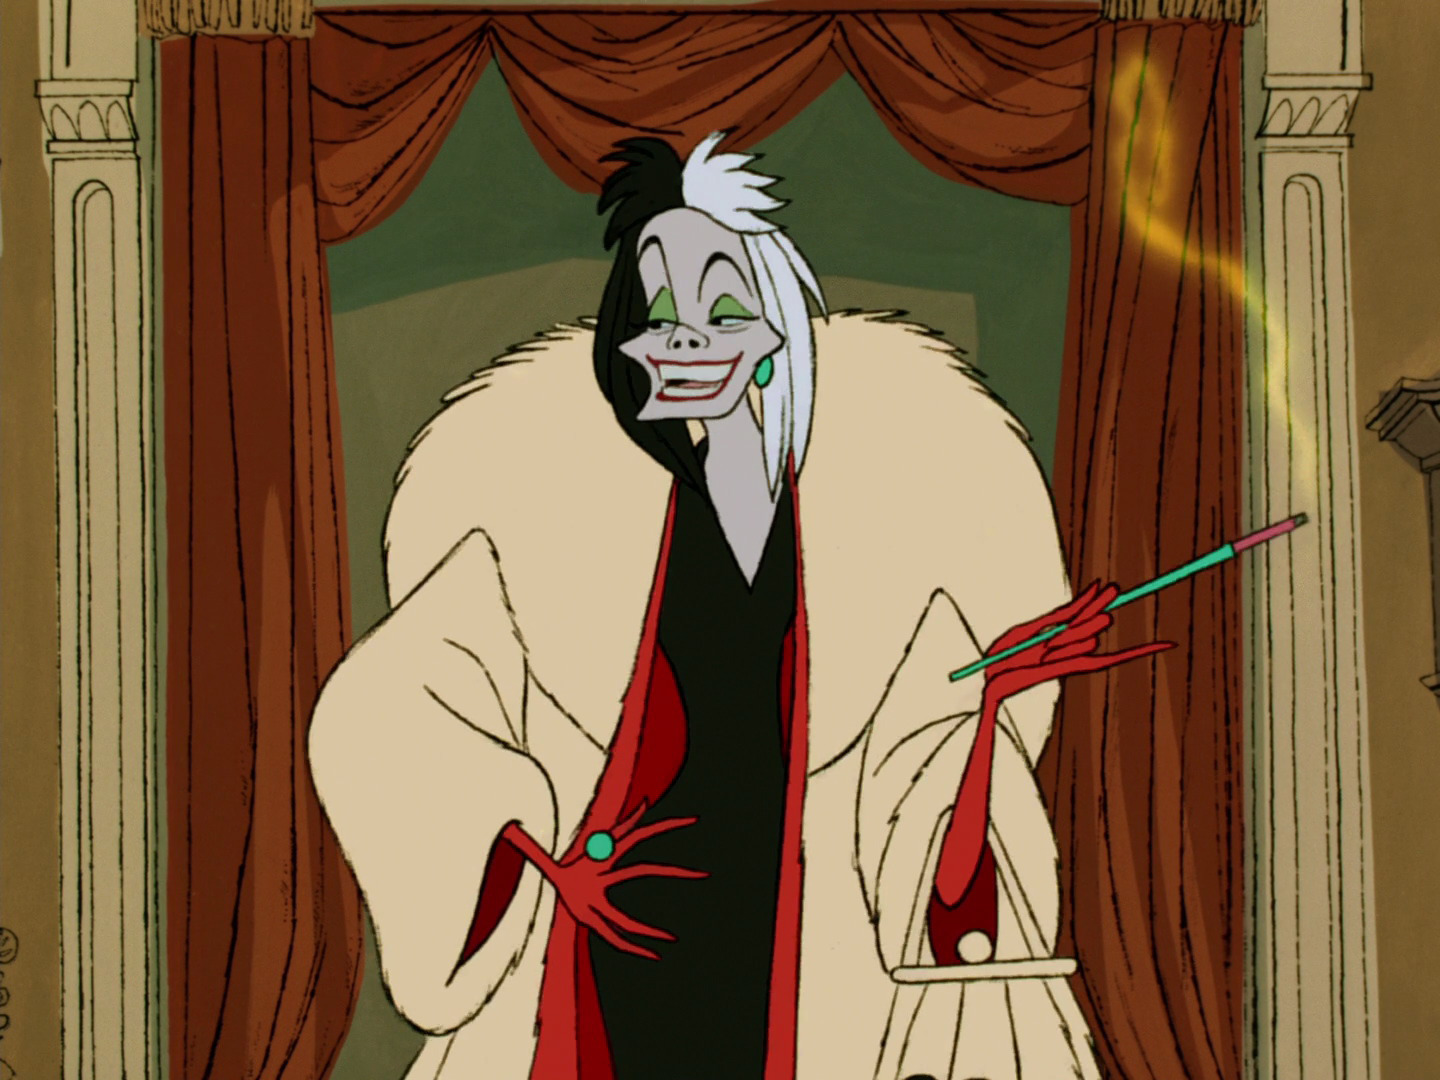 cruella enfer personnage 101 dalmatiens disney film animation